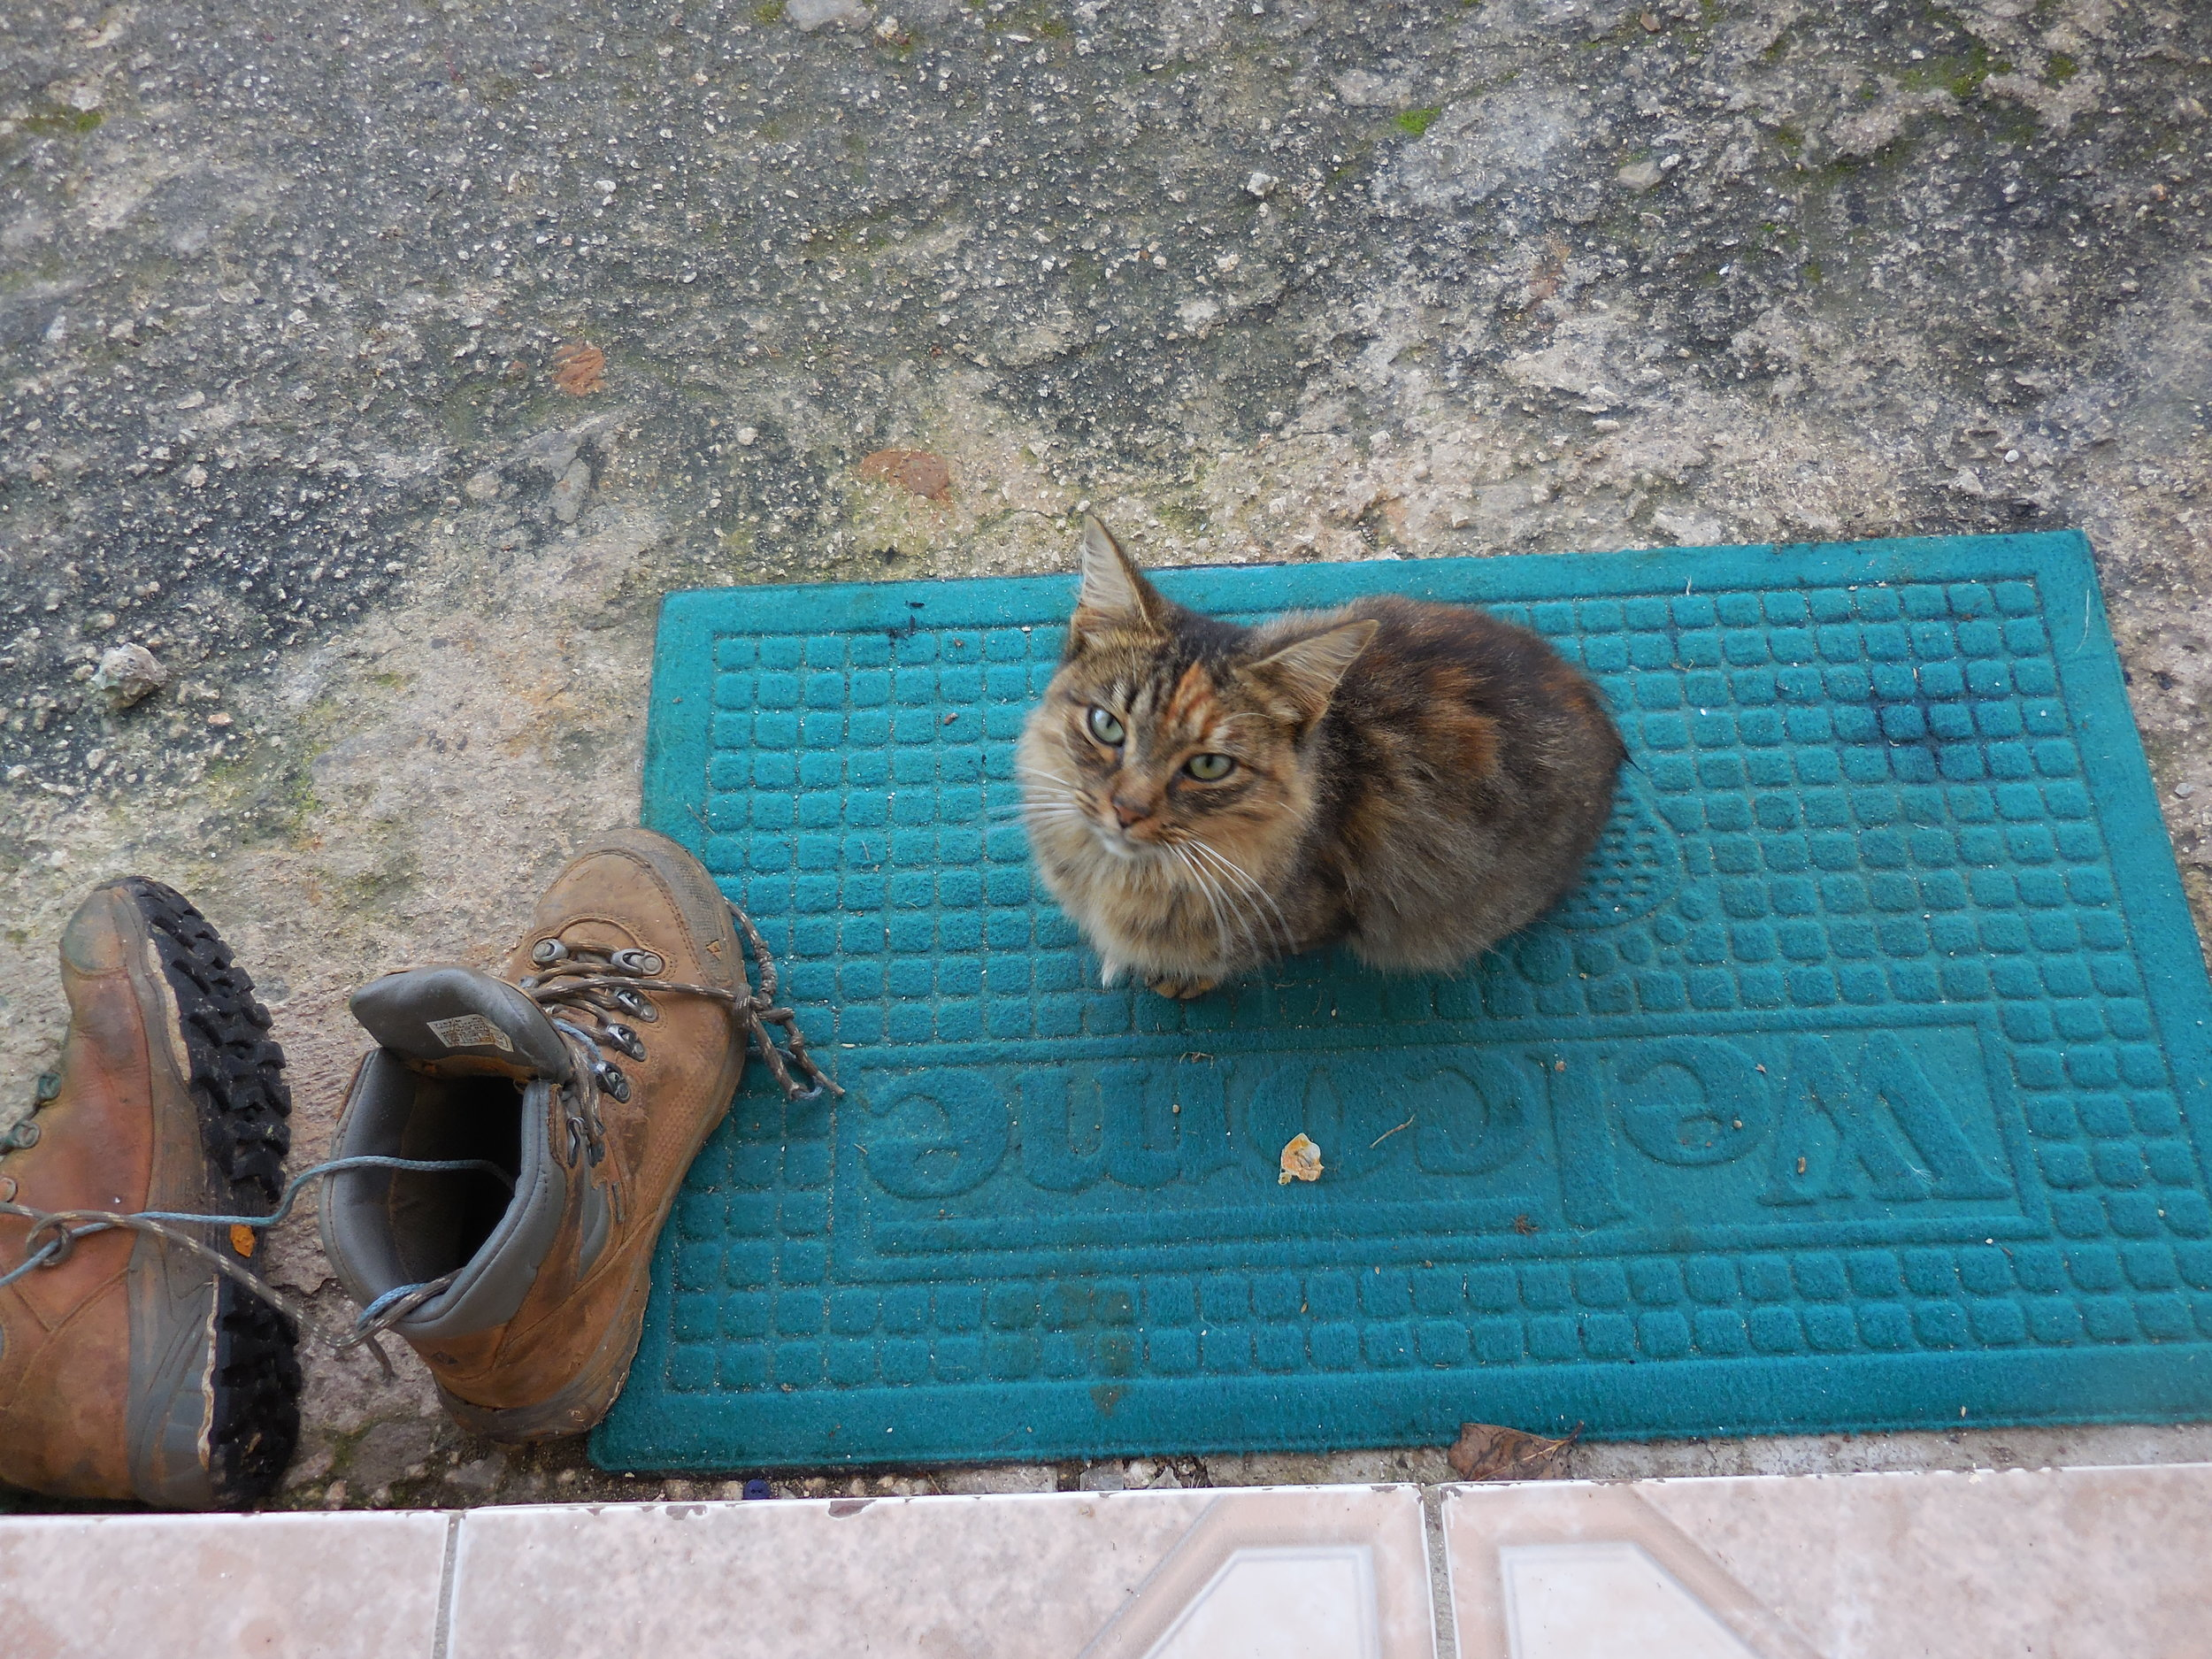 This cat took the Welcome mat literally.